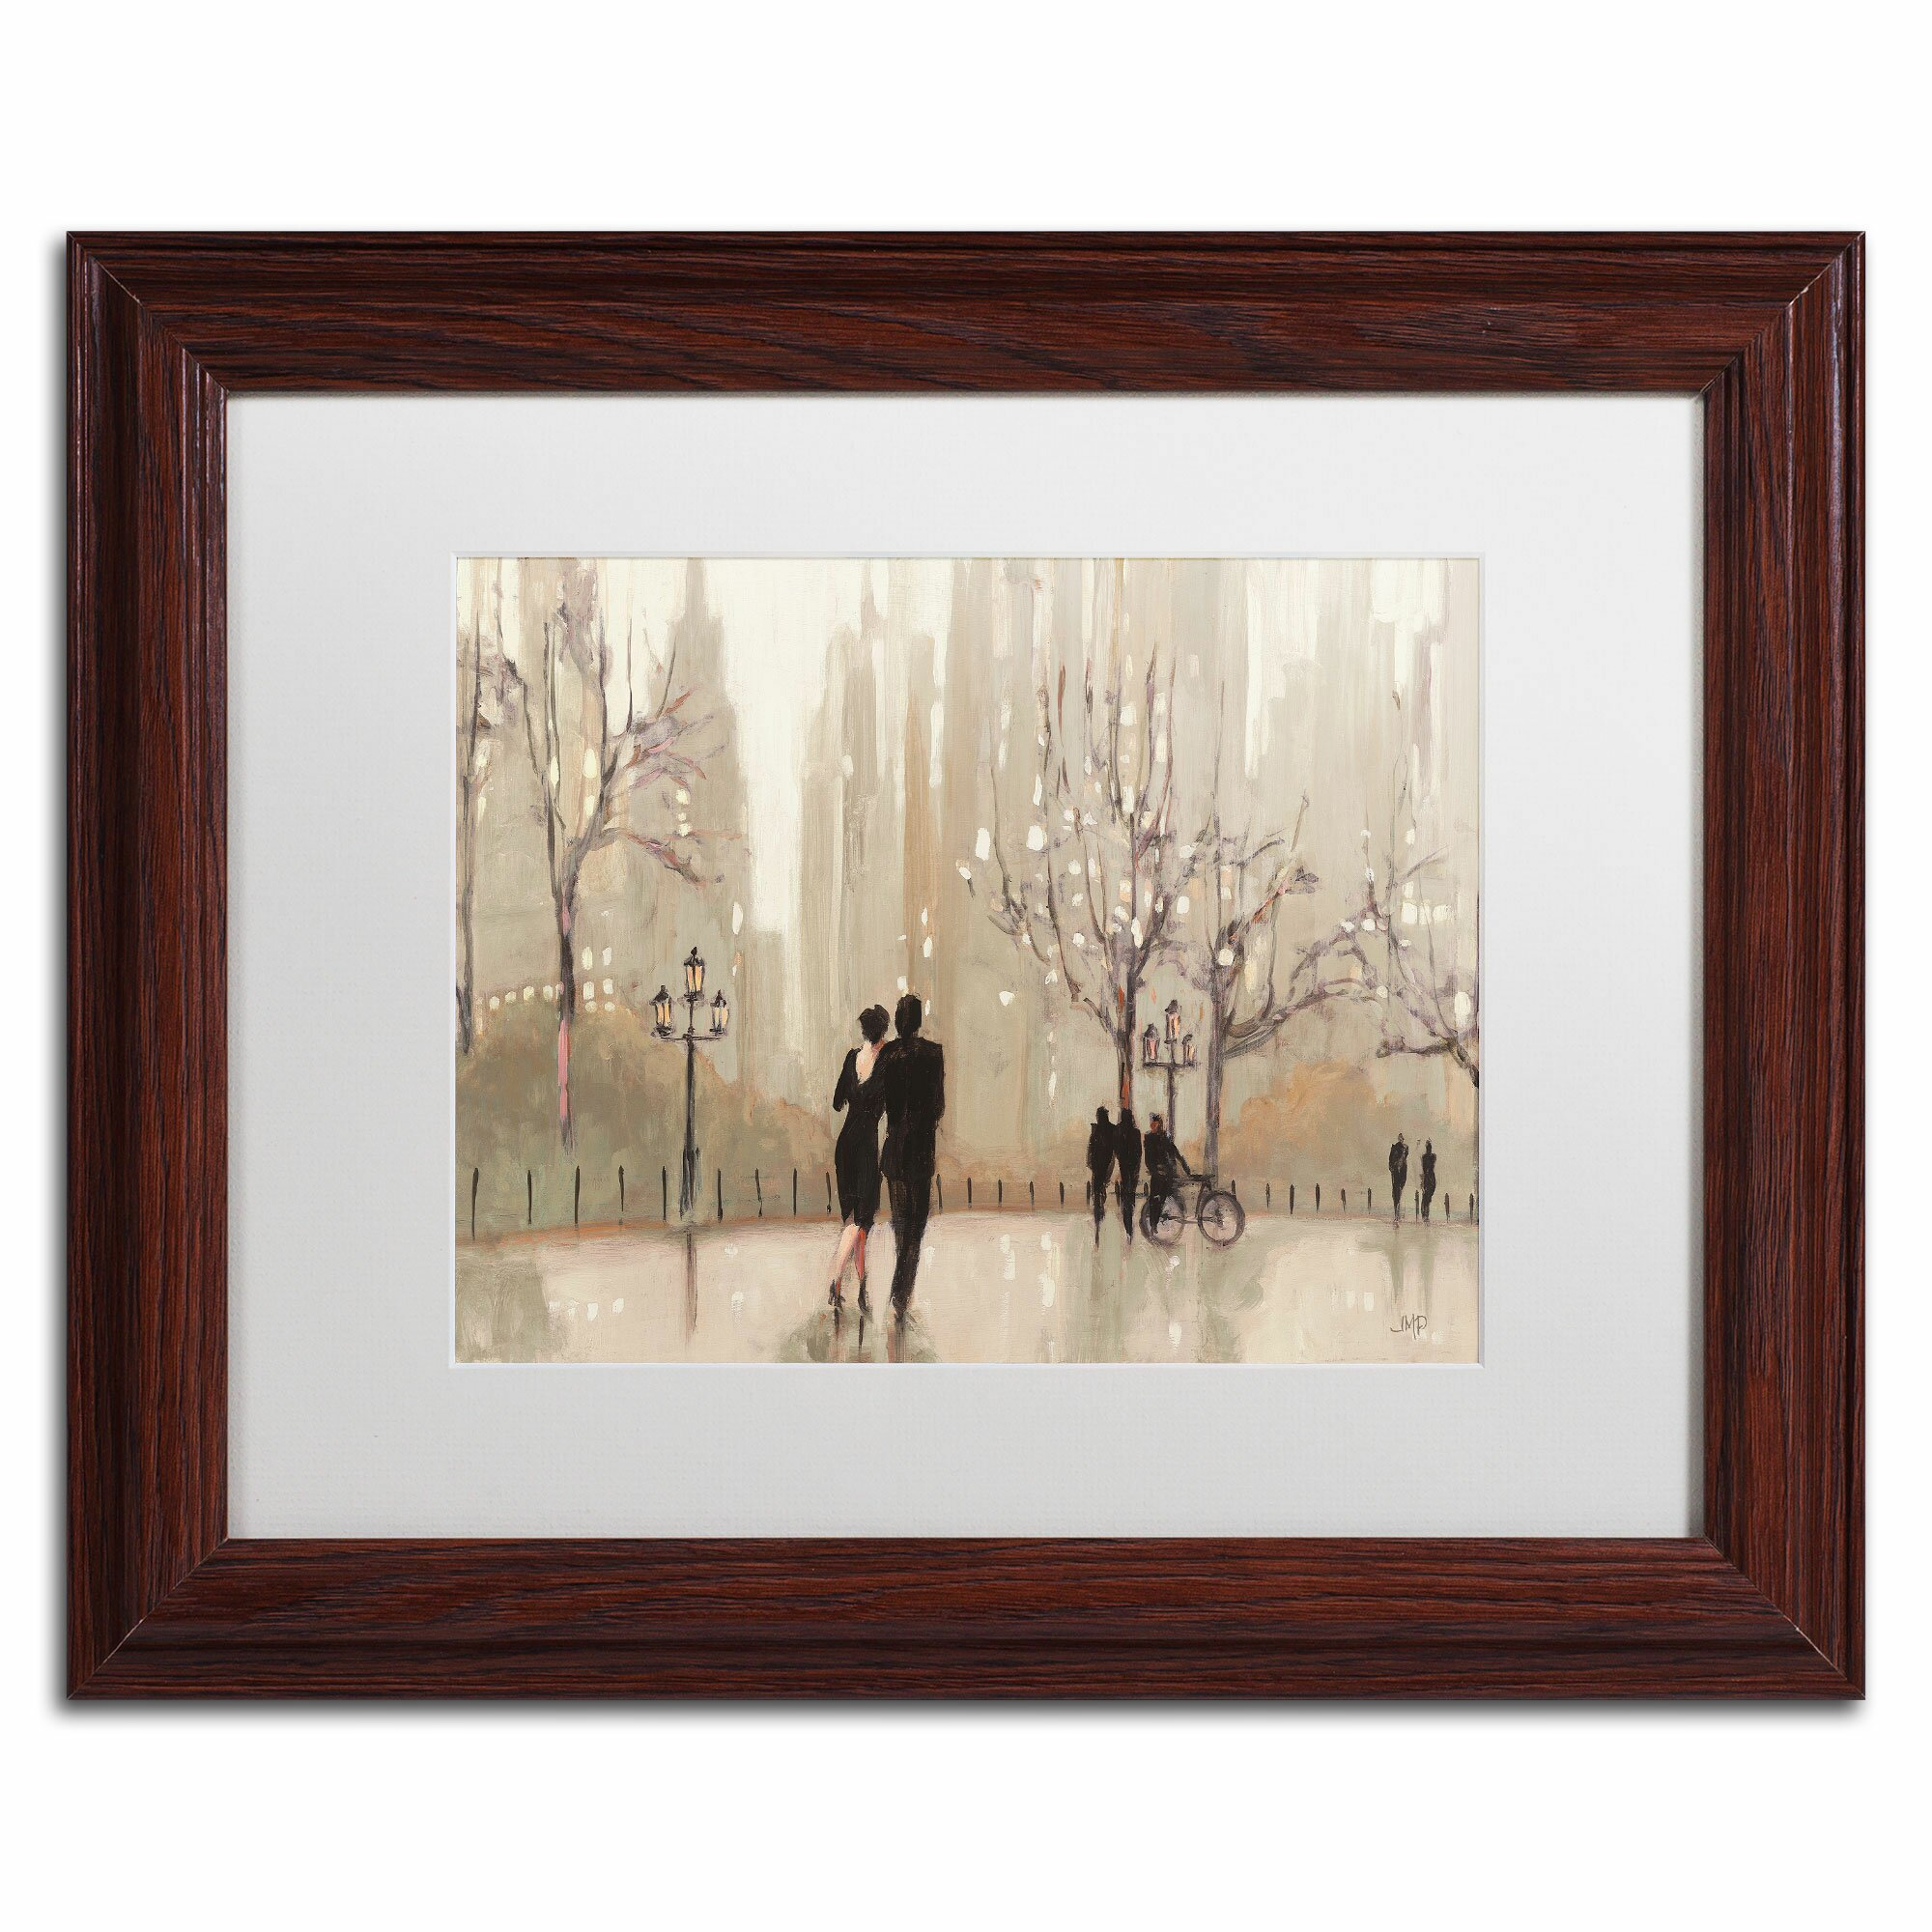 Trademark art 39 an evening out neutral 39 by julia purinton for Wall art pictures paintings